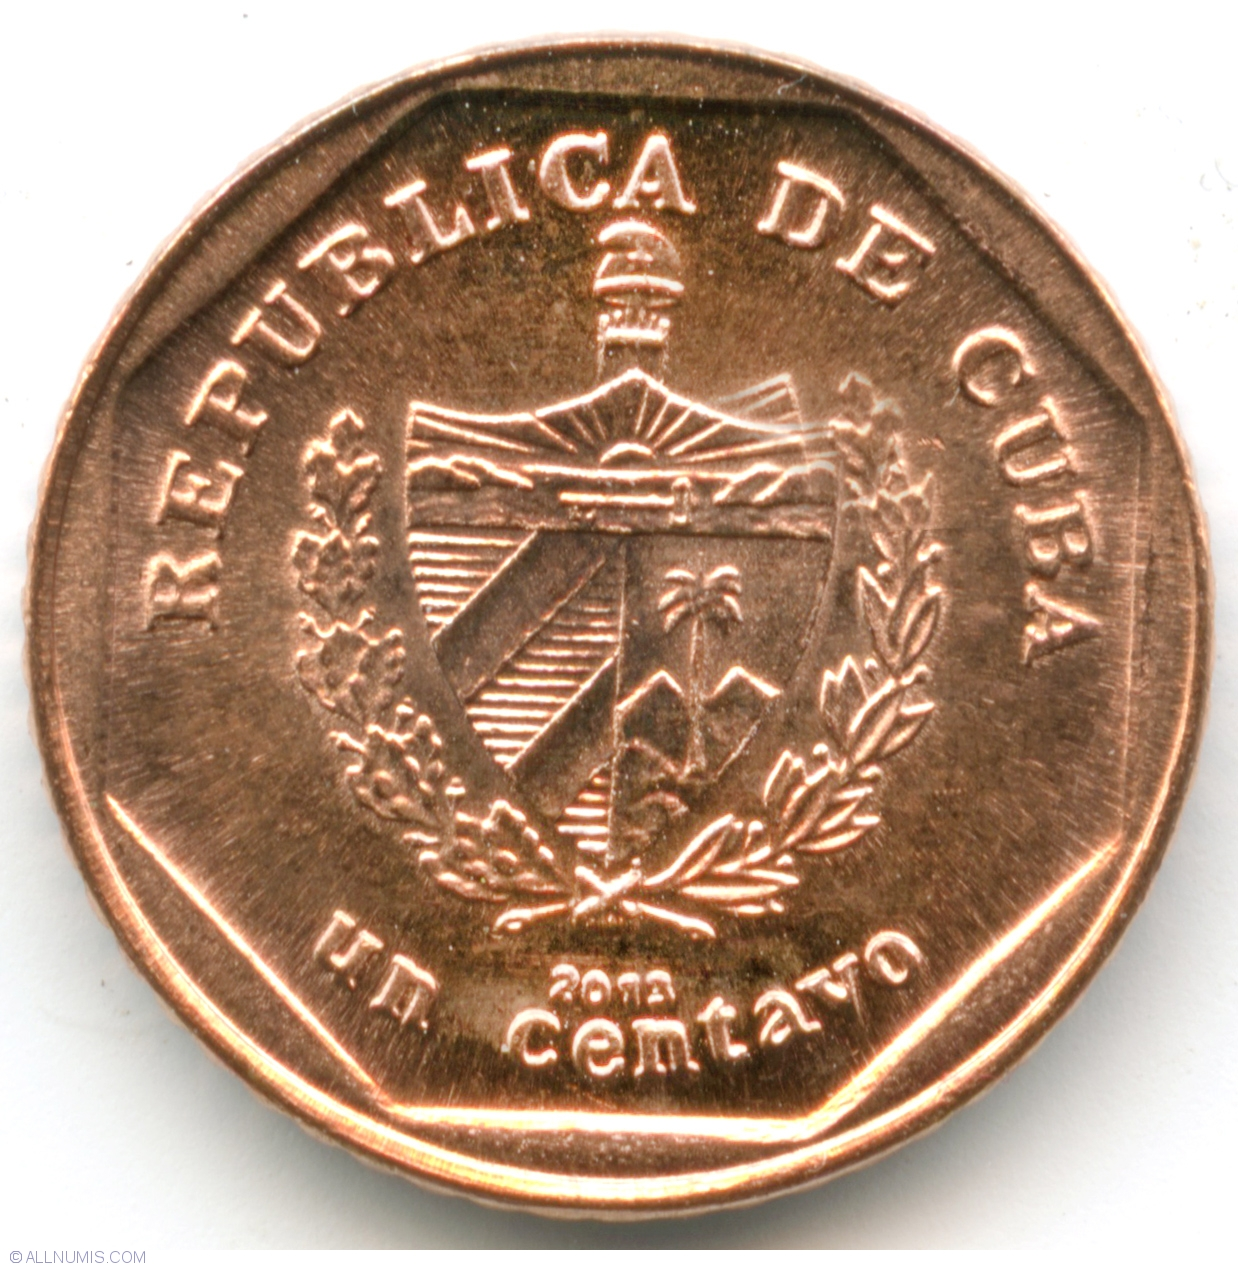 cuban currency coins